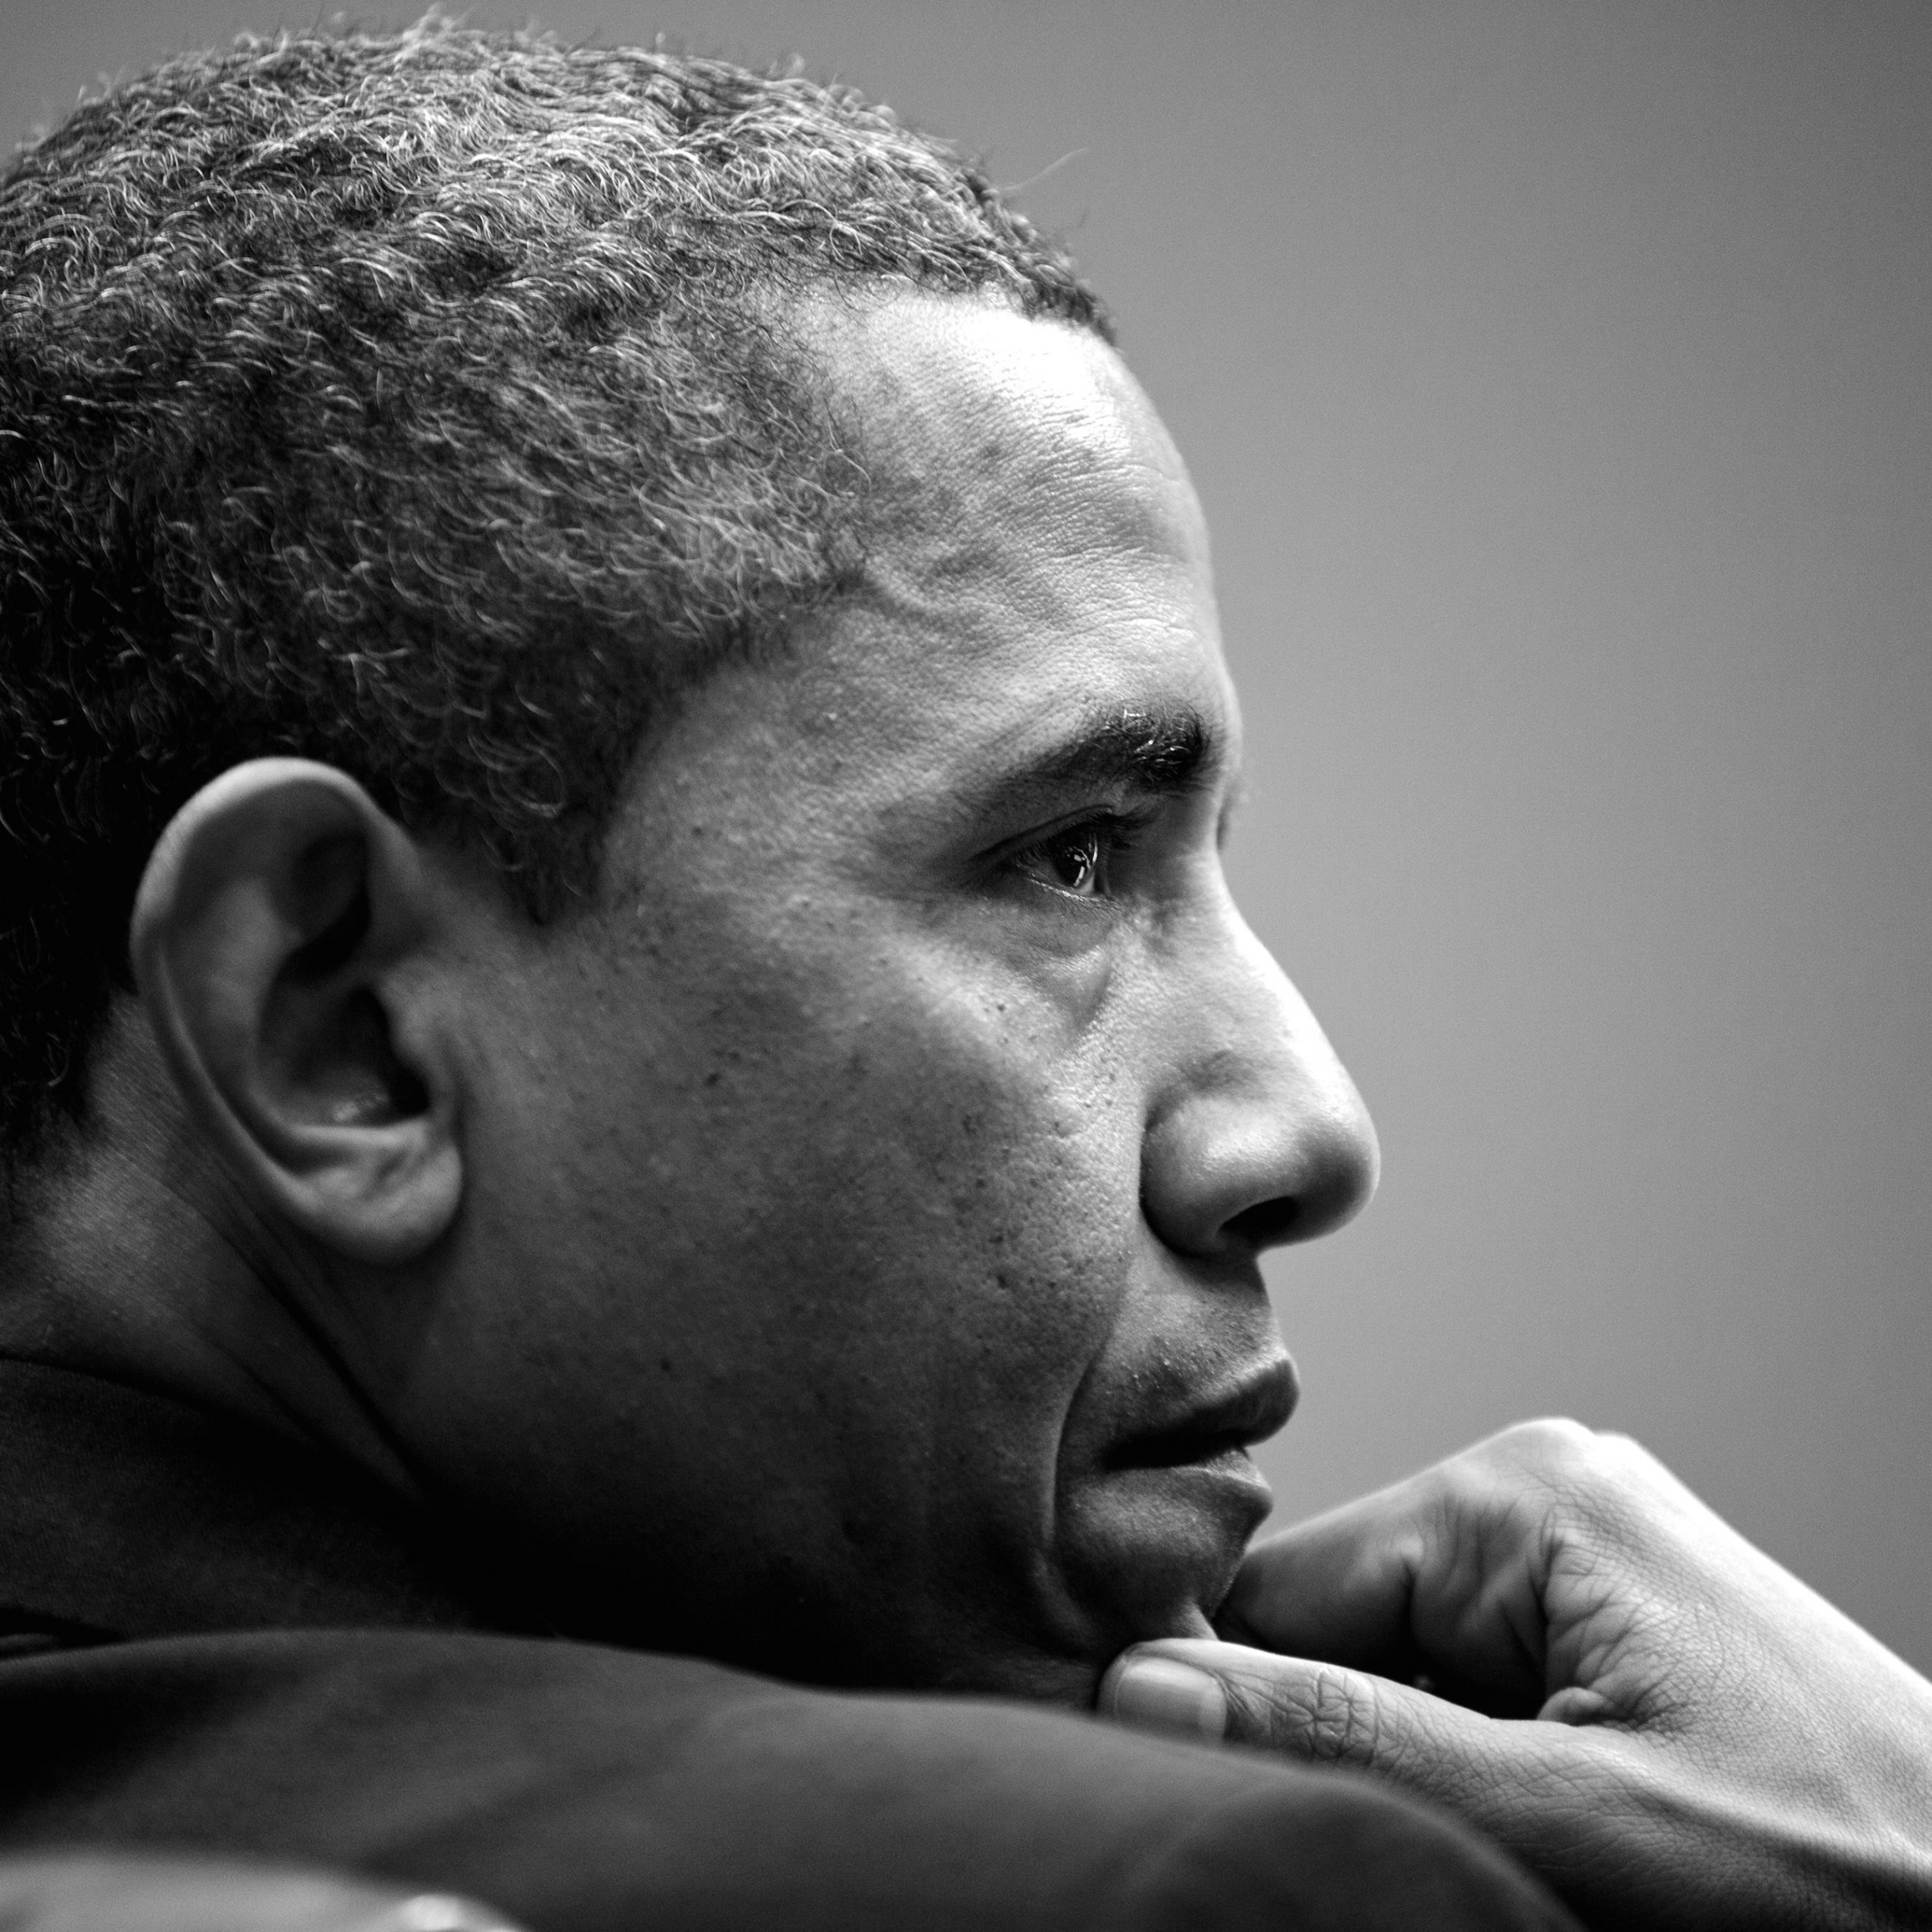 Barack Obama in Black & White Wallpaper for Apple iPad 4